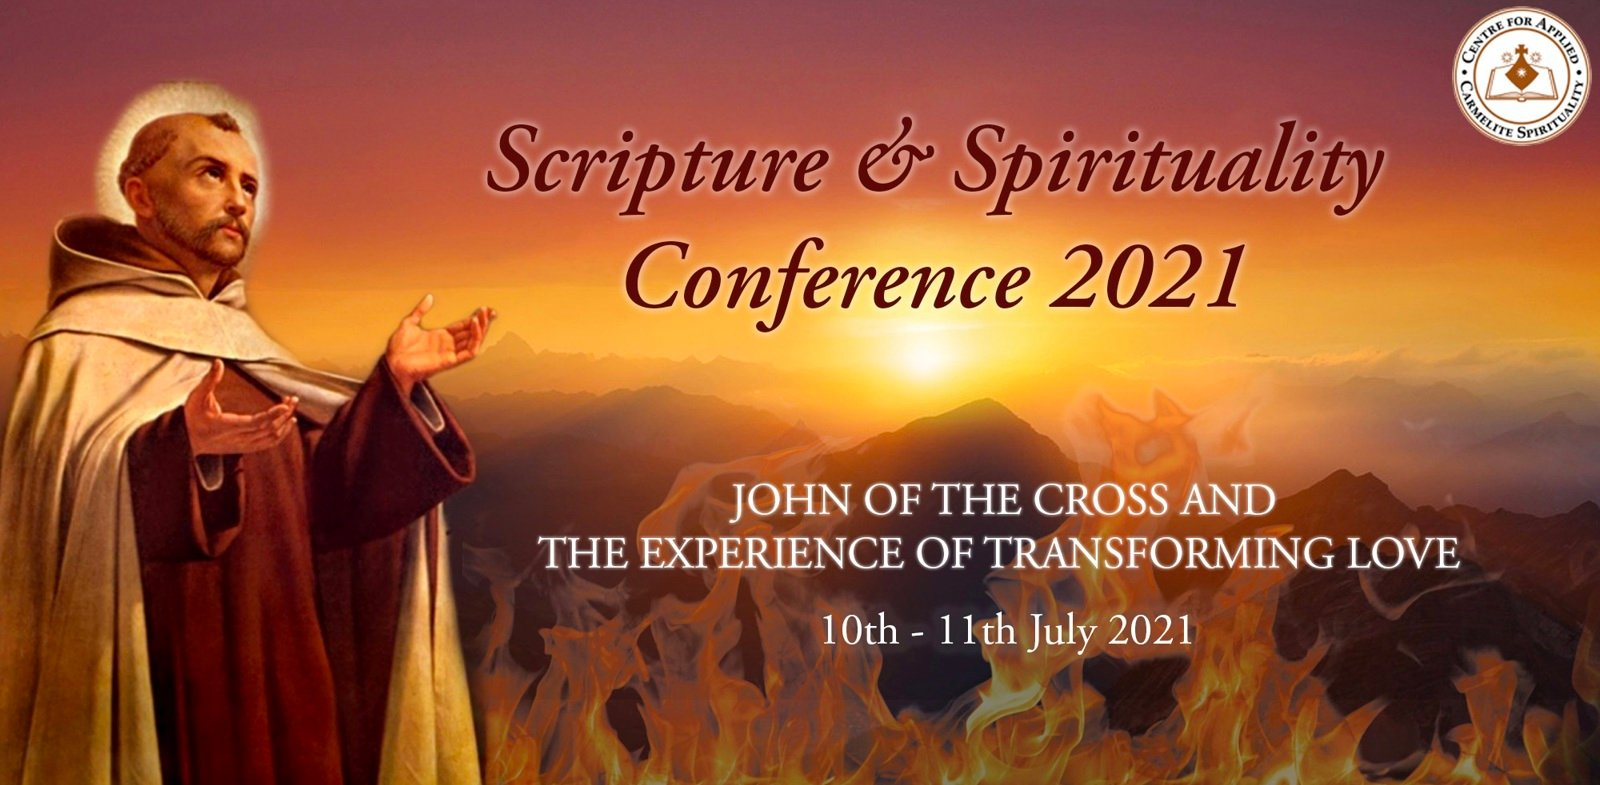 Scripture & Spirituality Conference